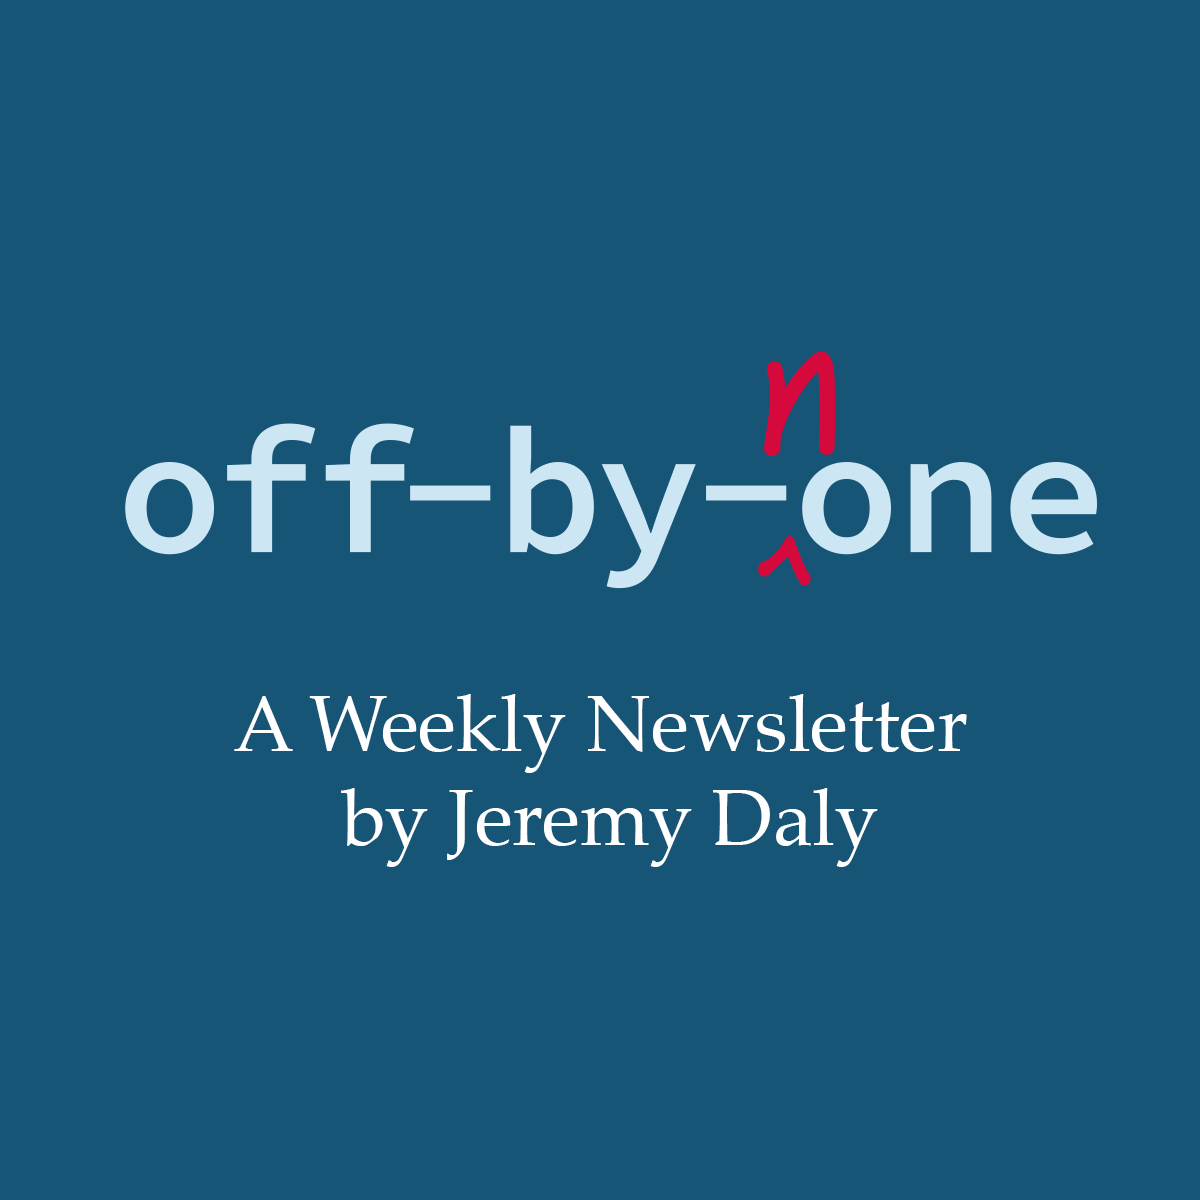 Off-by-none: Issue #46 - Jeremy Daly